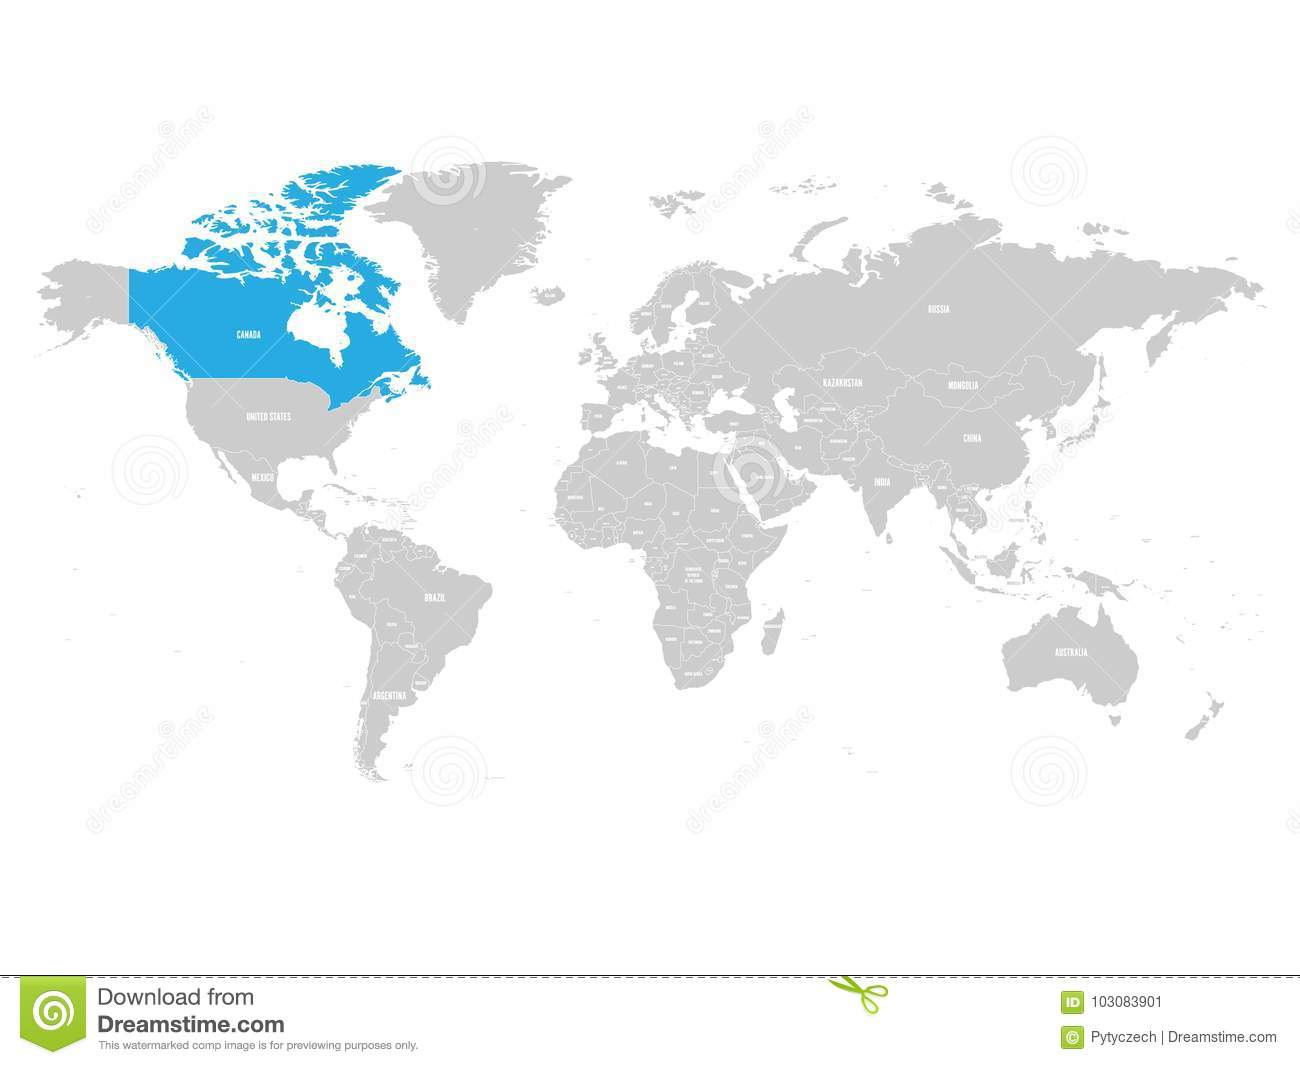 Canada On Map Of The World.Canada Marked By Blue In Grey World Political Map Vector